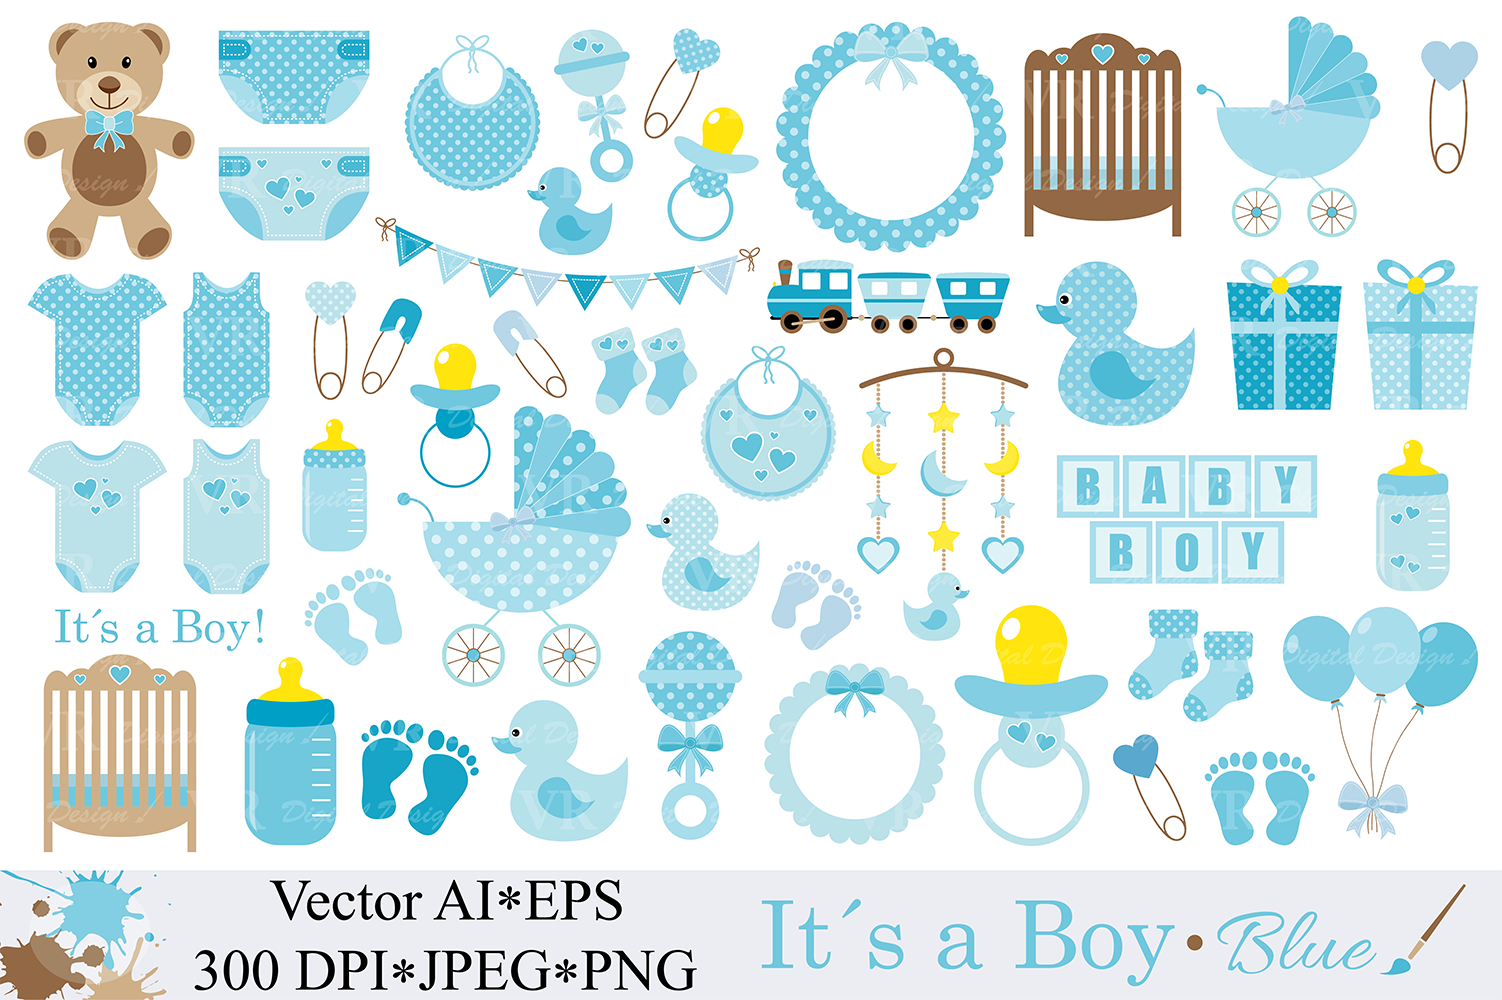 Baby Boy Clipart Blue Baby Shower Clipart Nursery Clip art It`s a boy  Graphics Illustration Vector.